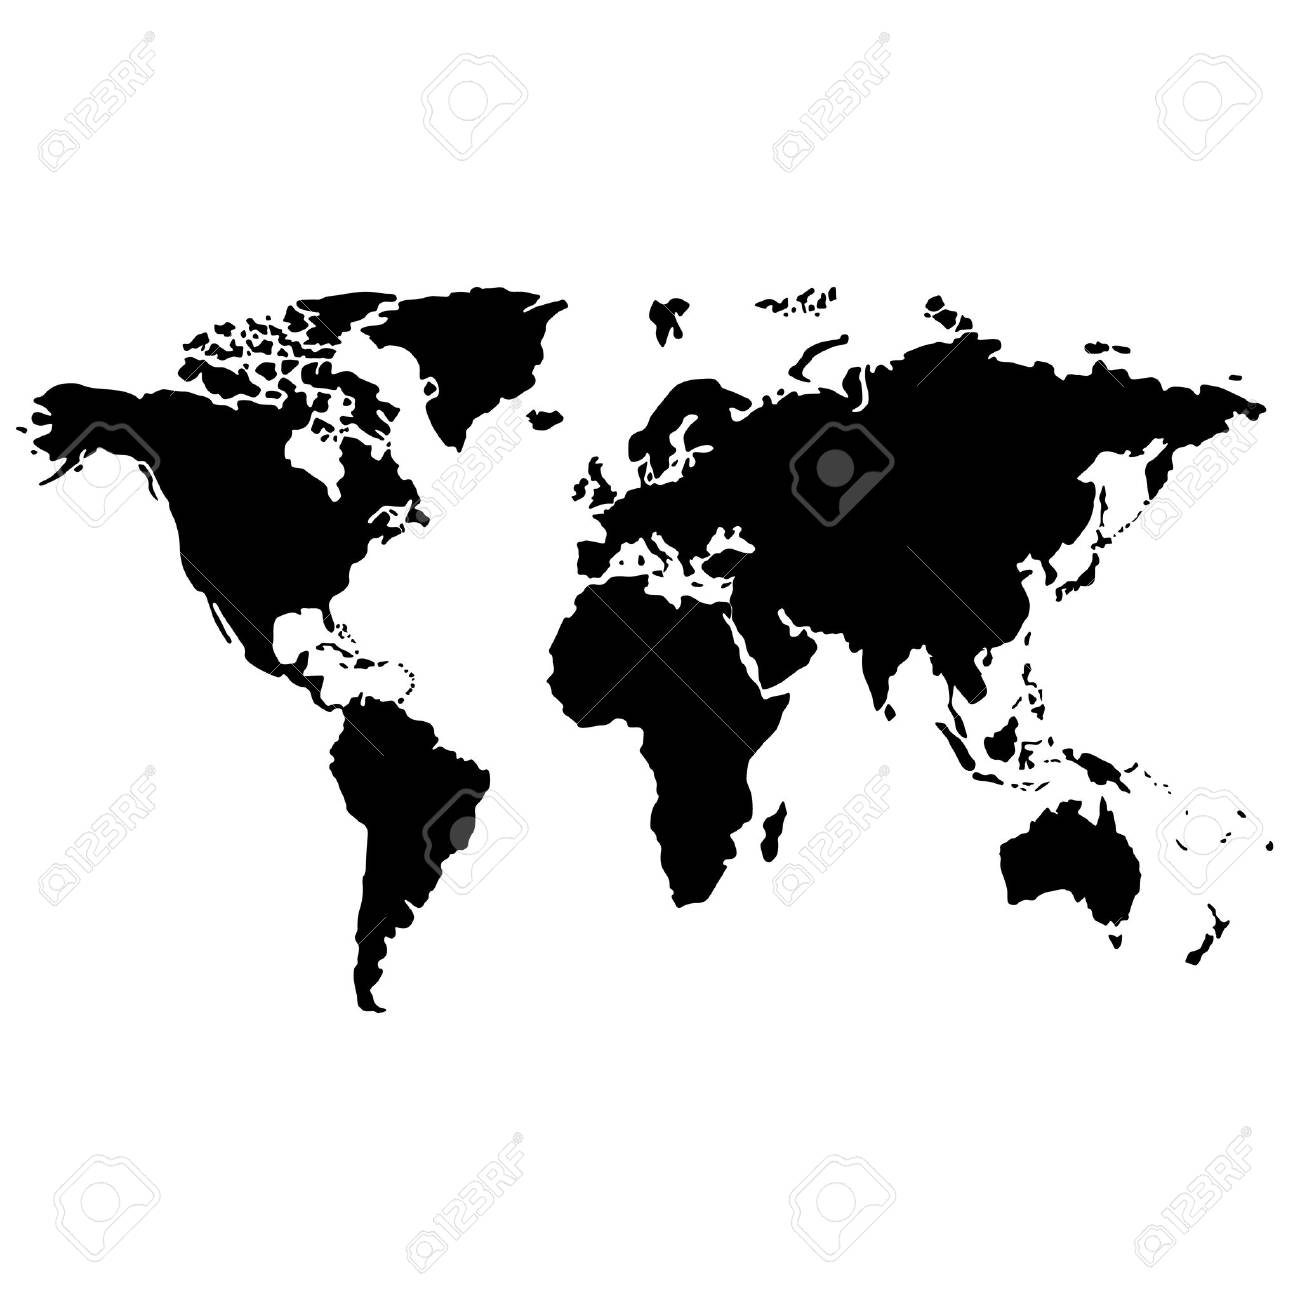 Black and white world map royalty free cliparts vectors and stock black and white world map stock vector 35818068 gumiabroncs Image collections